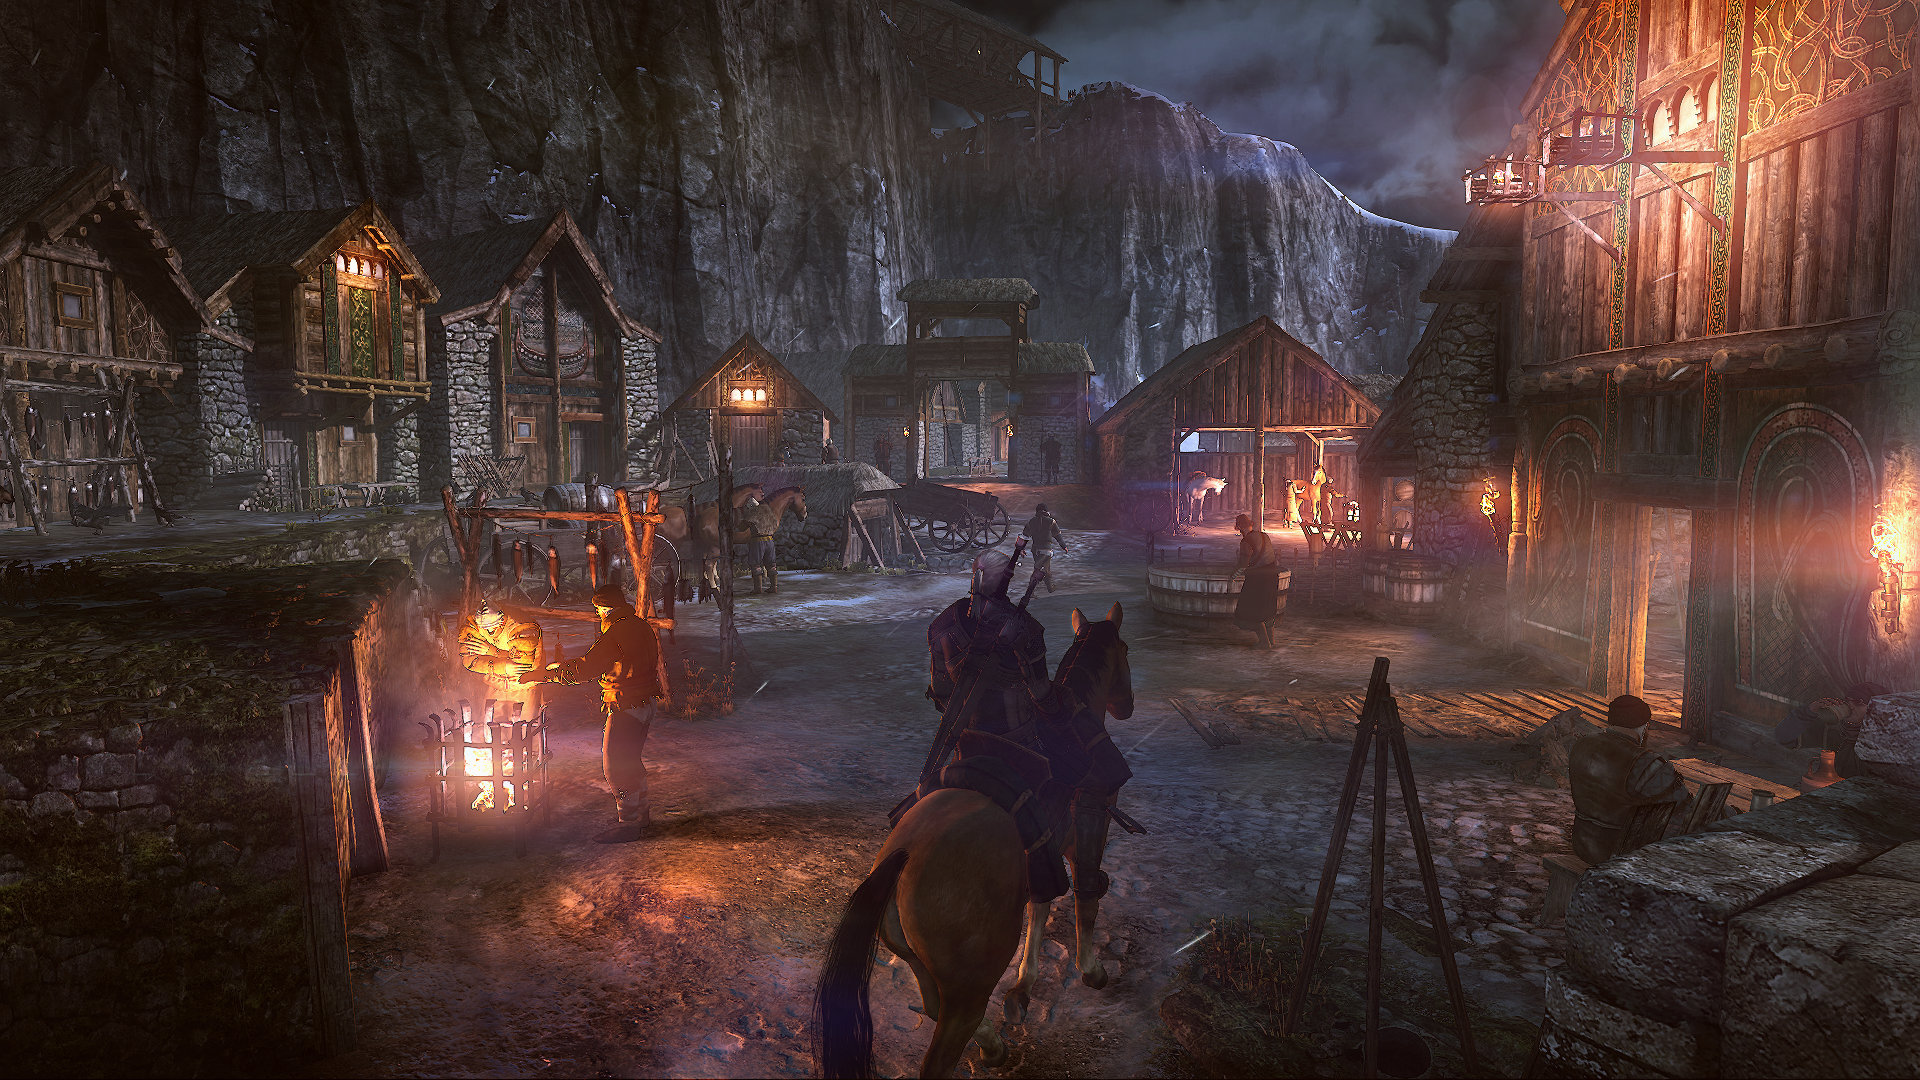 10 The Witcher 3 Wild Hunt Town